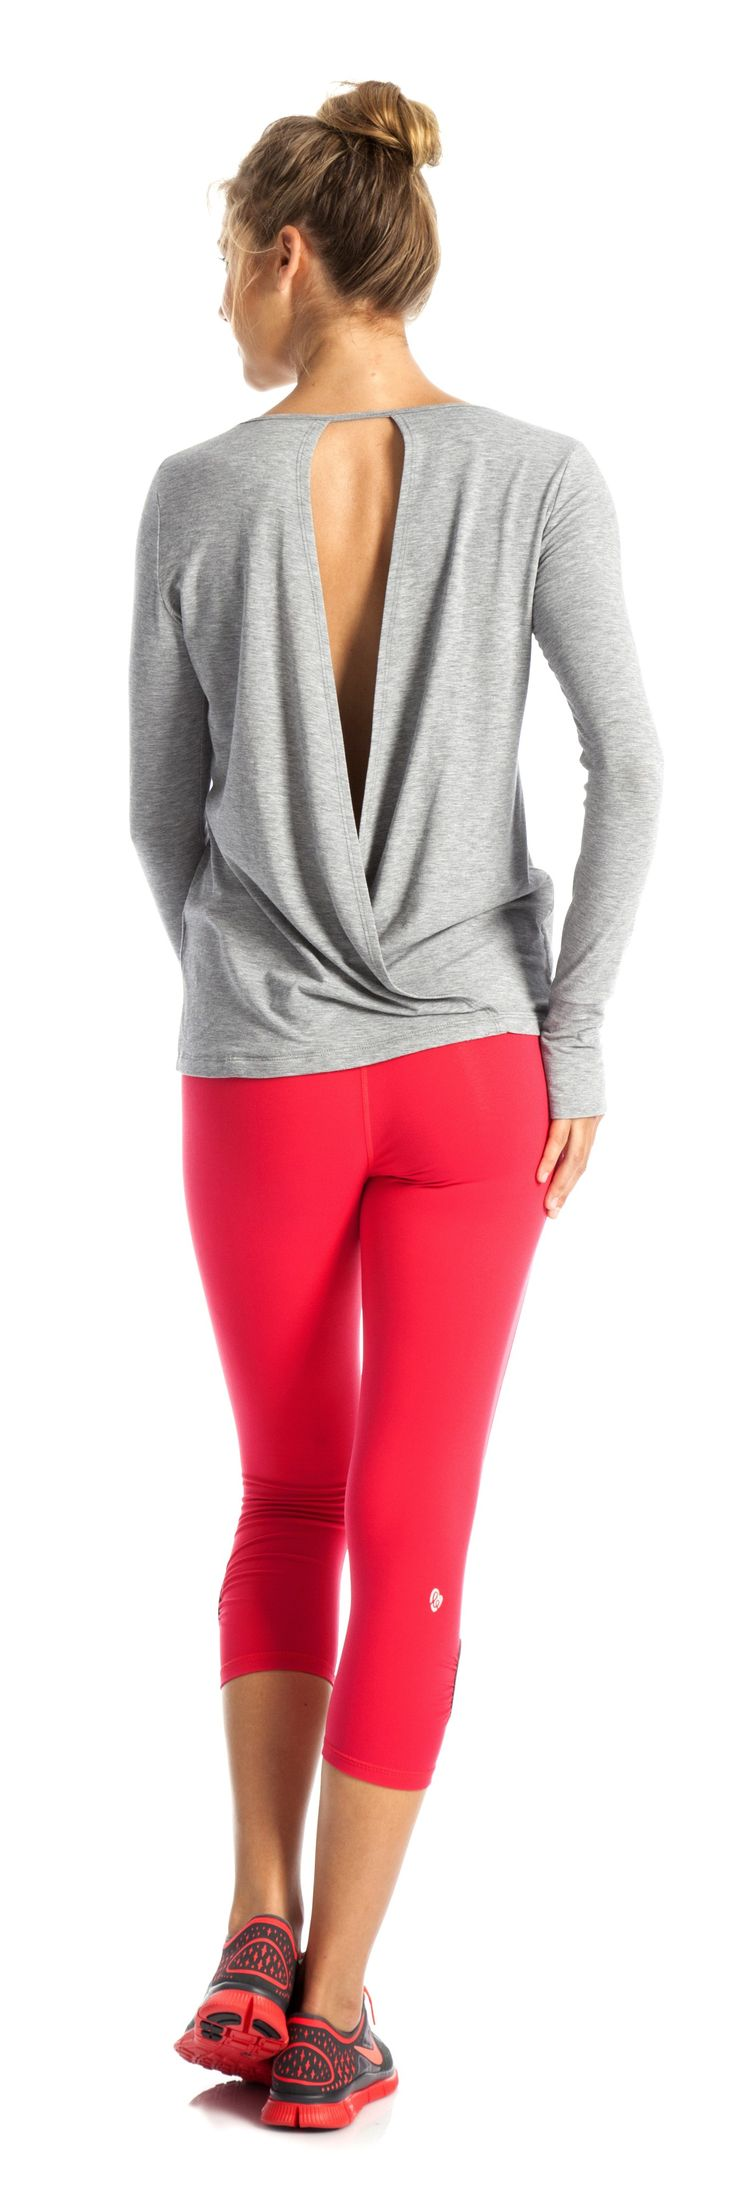 Cute workout clothes for women | Yoga Tops | Yoga Pants | Gym clothes | Sport br...